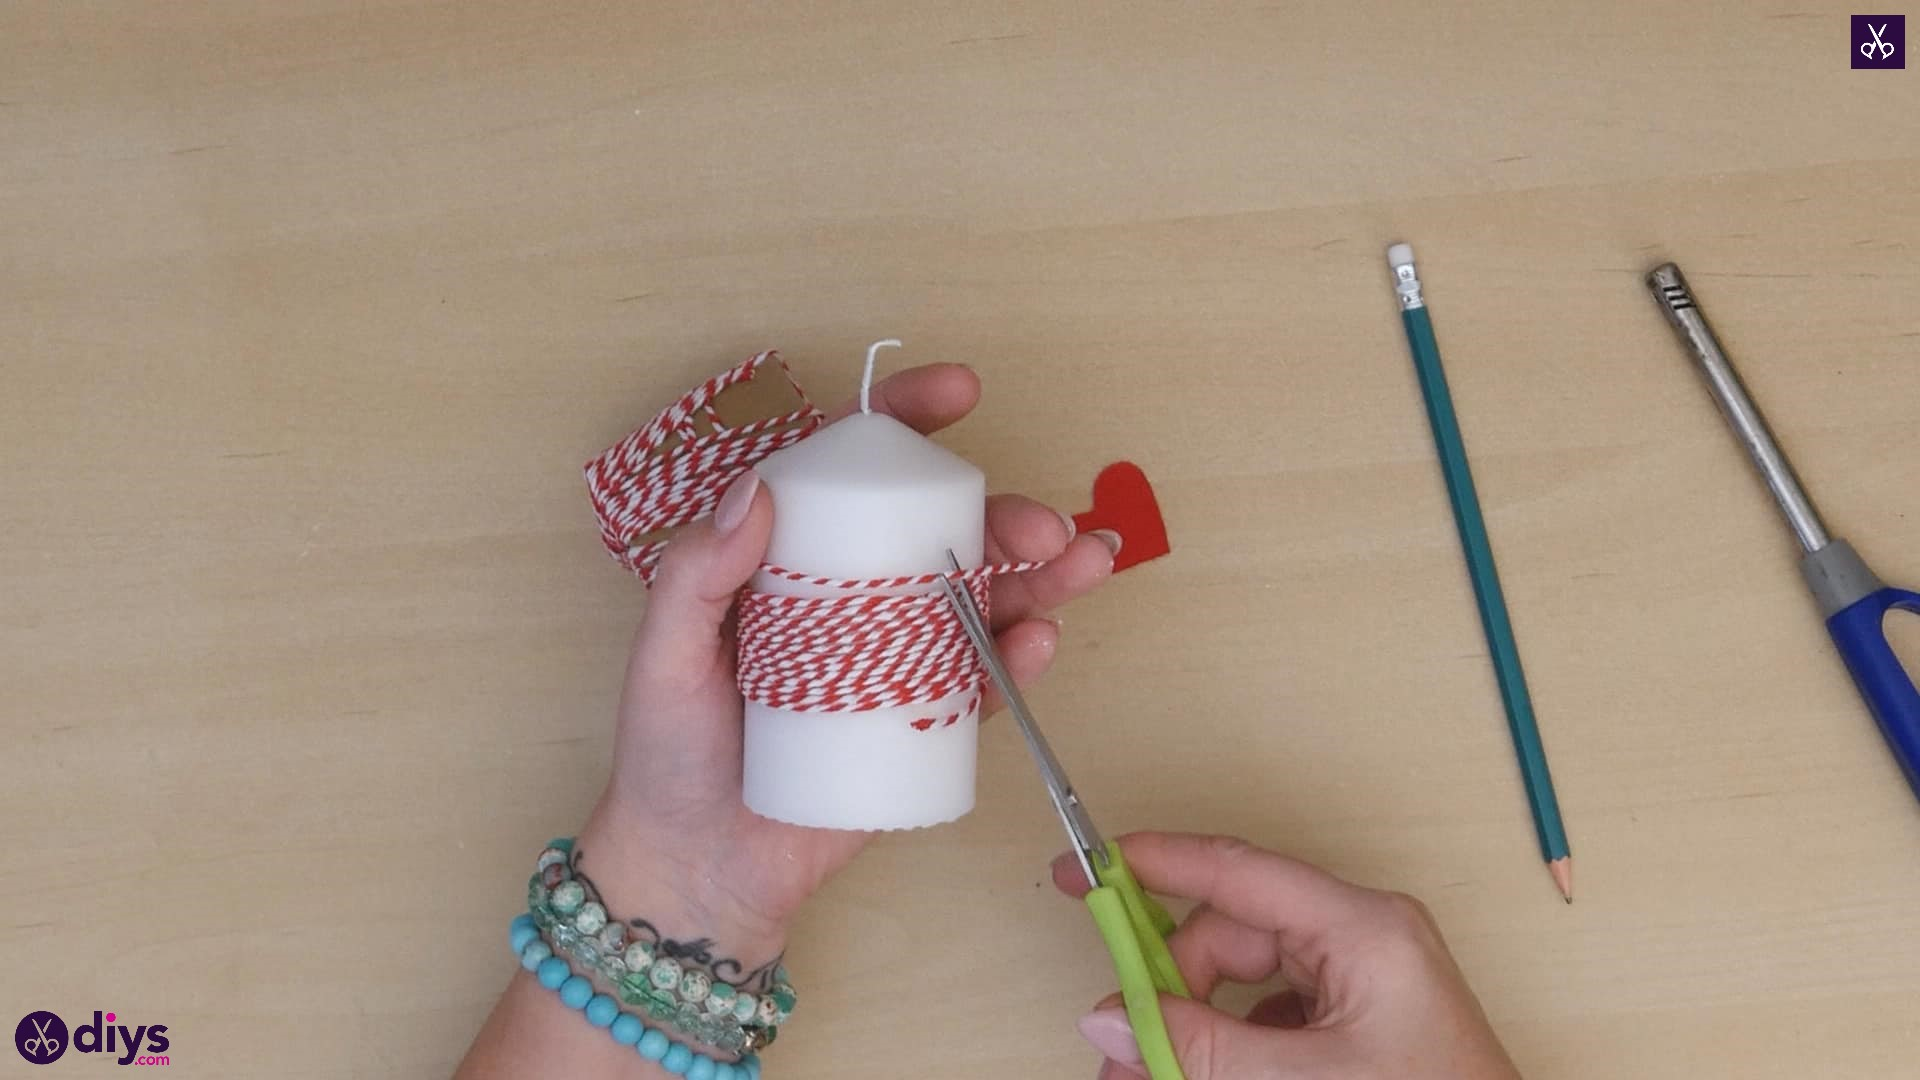 Diy valentine's candle red paper step 3c